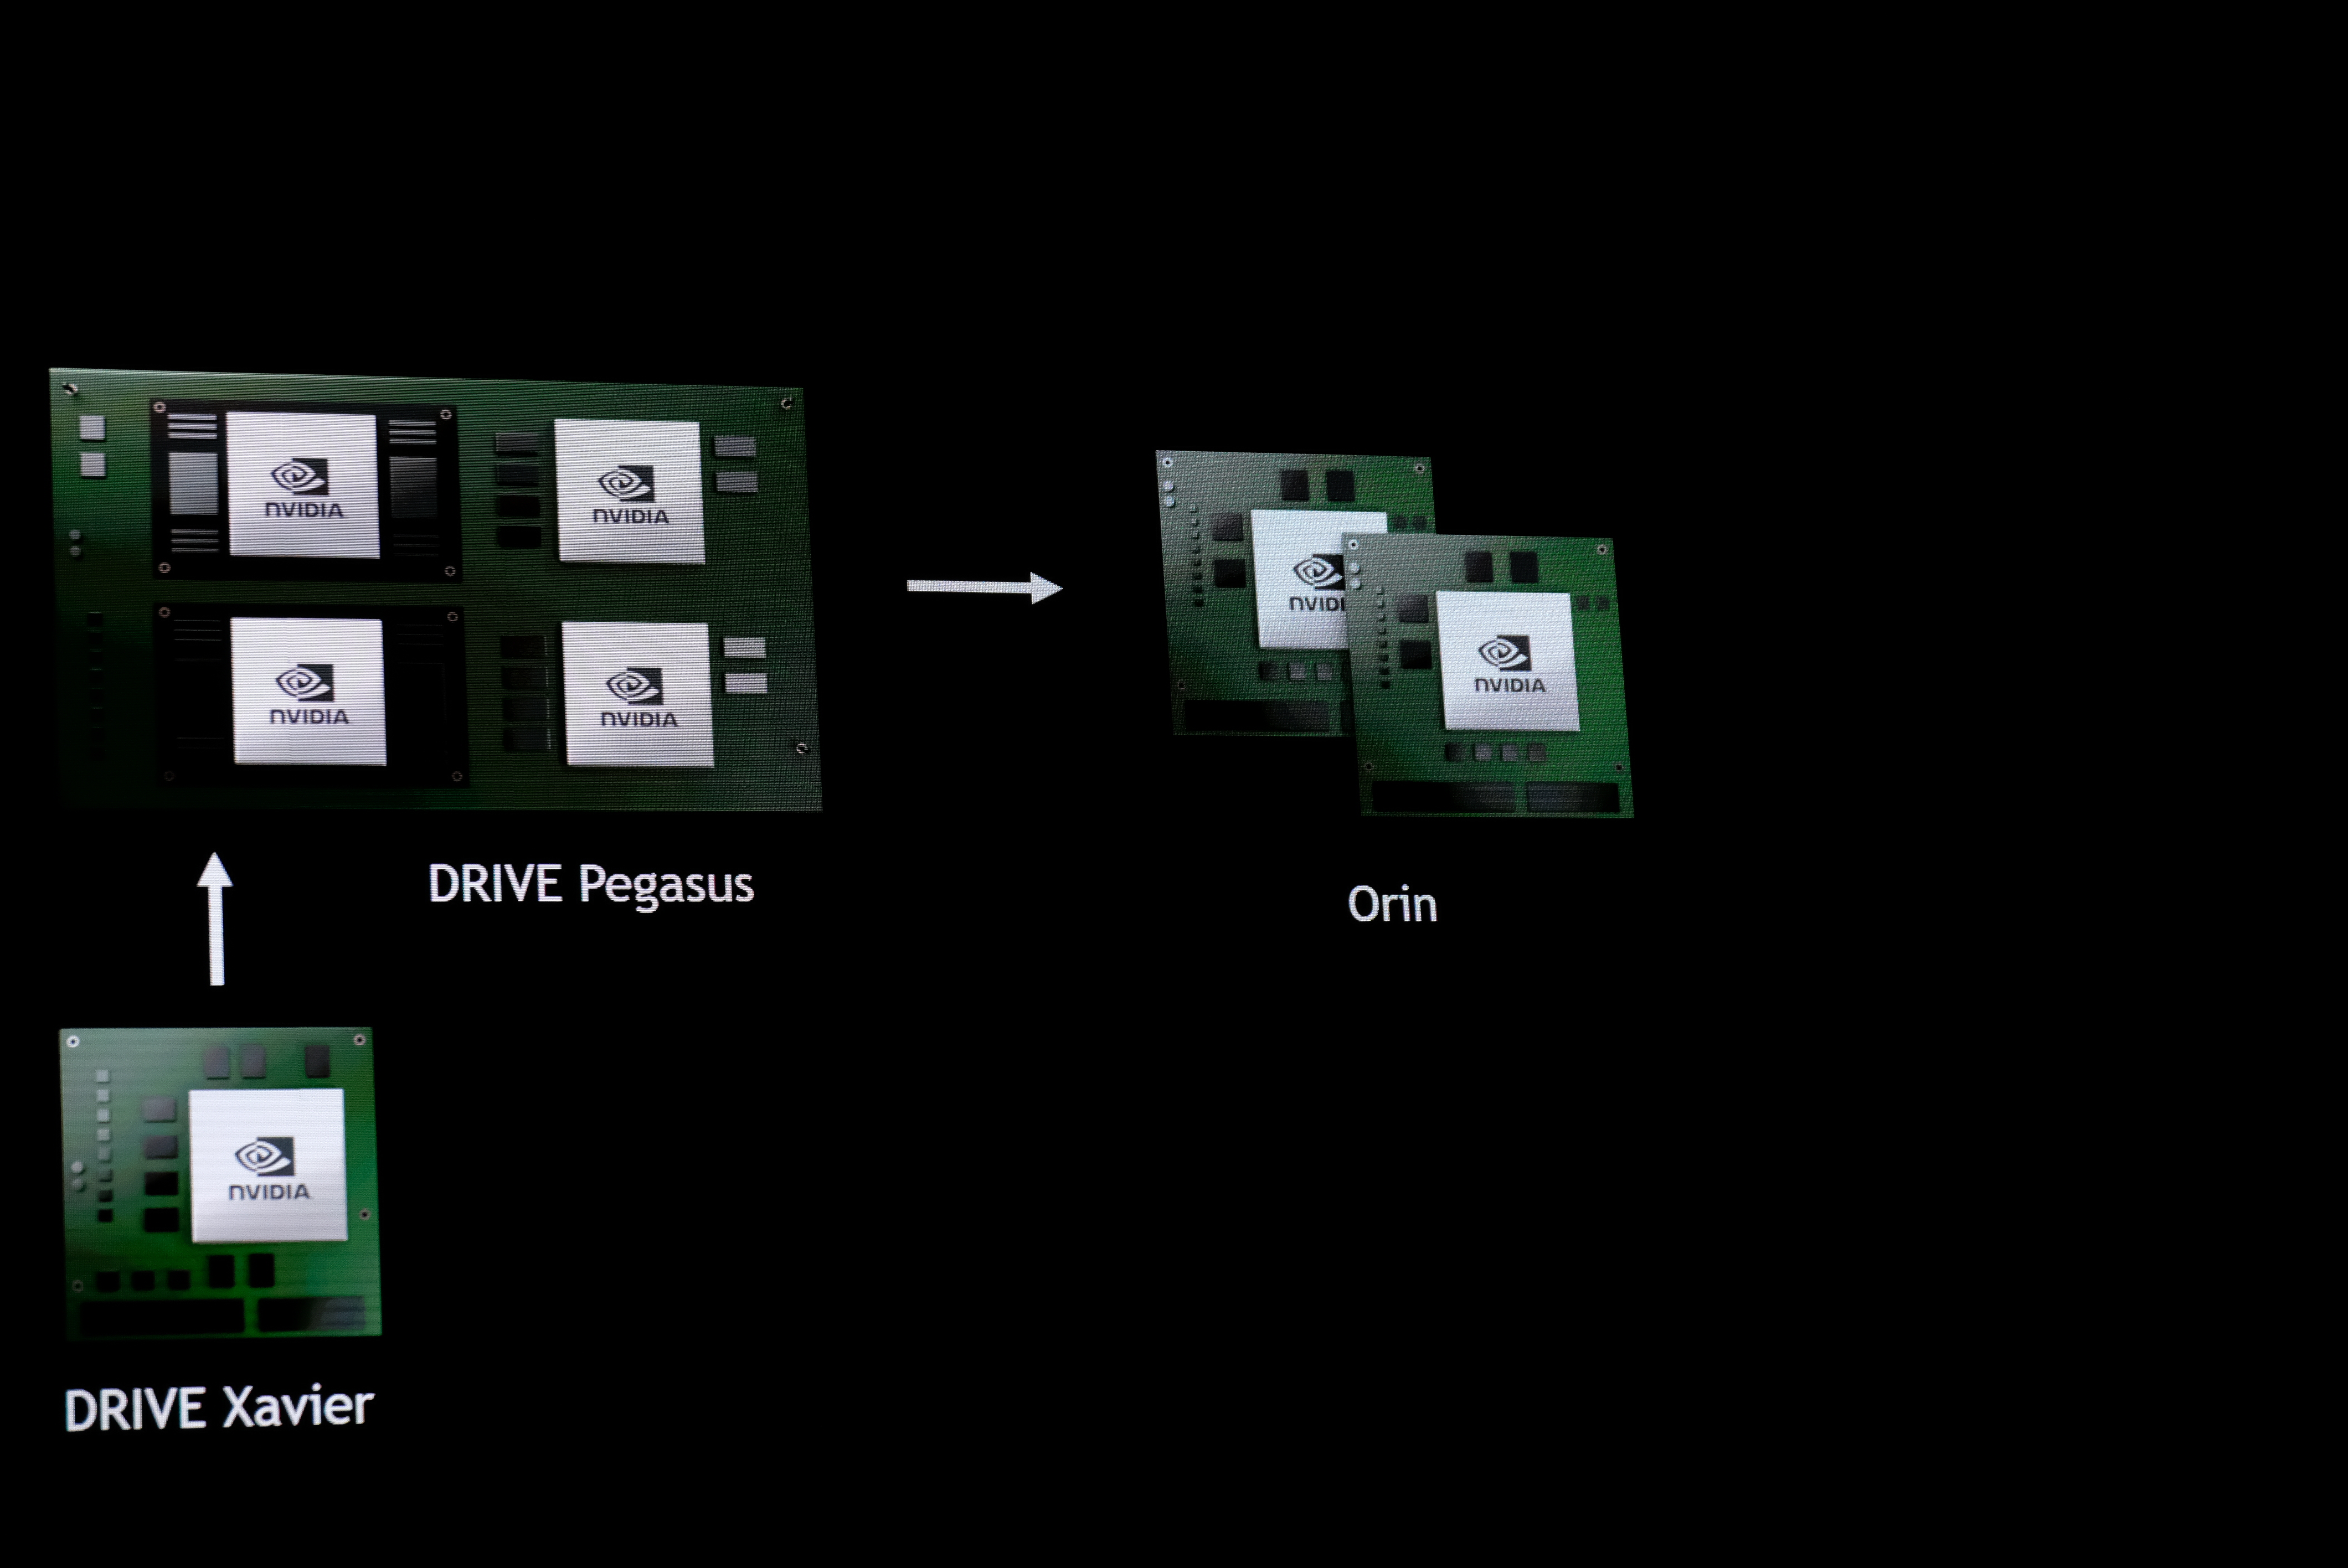 Nvidia previews next-generation Drive Orin self-driving computer